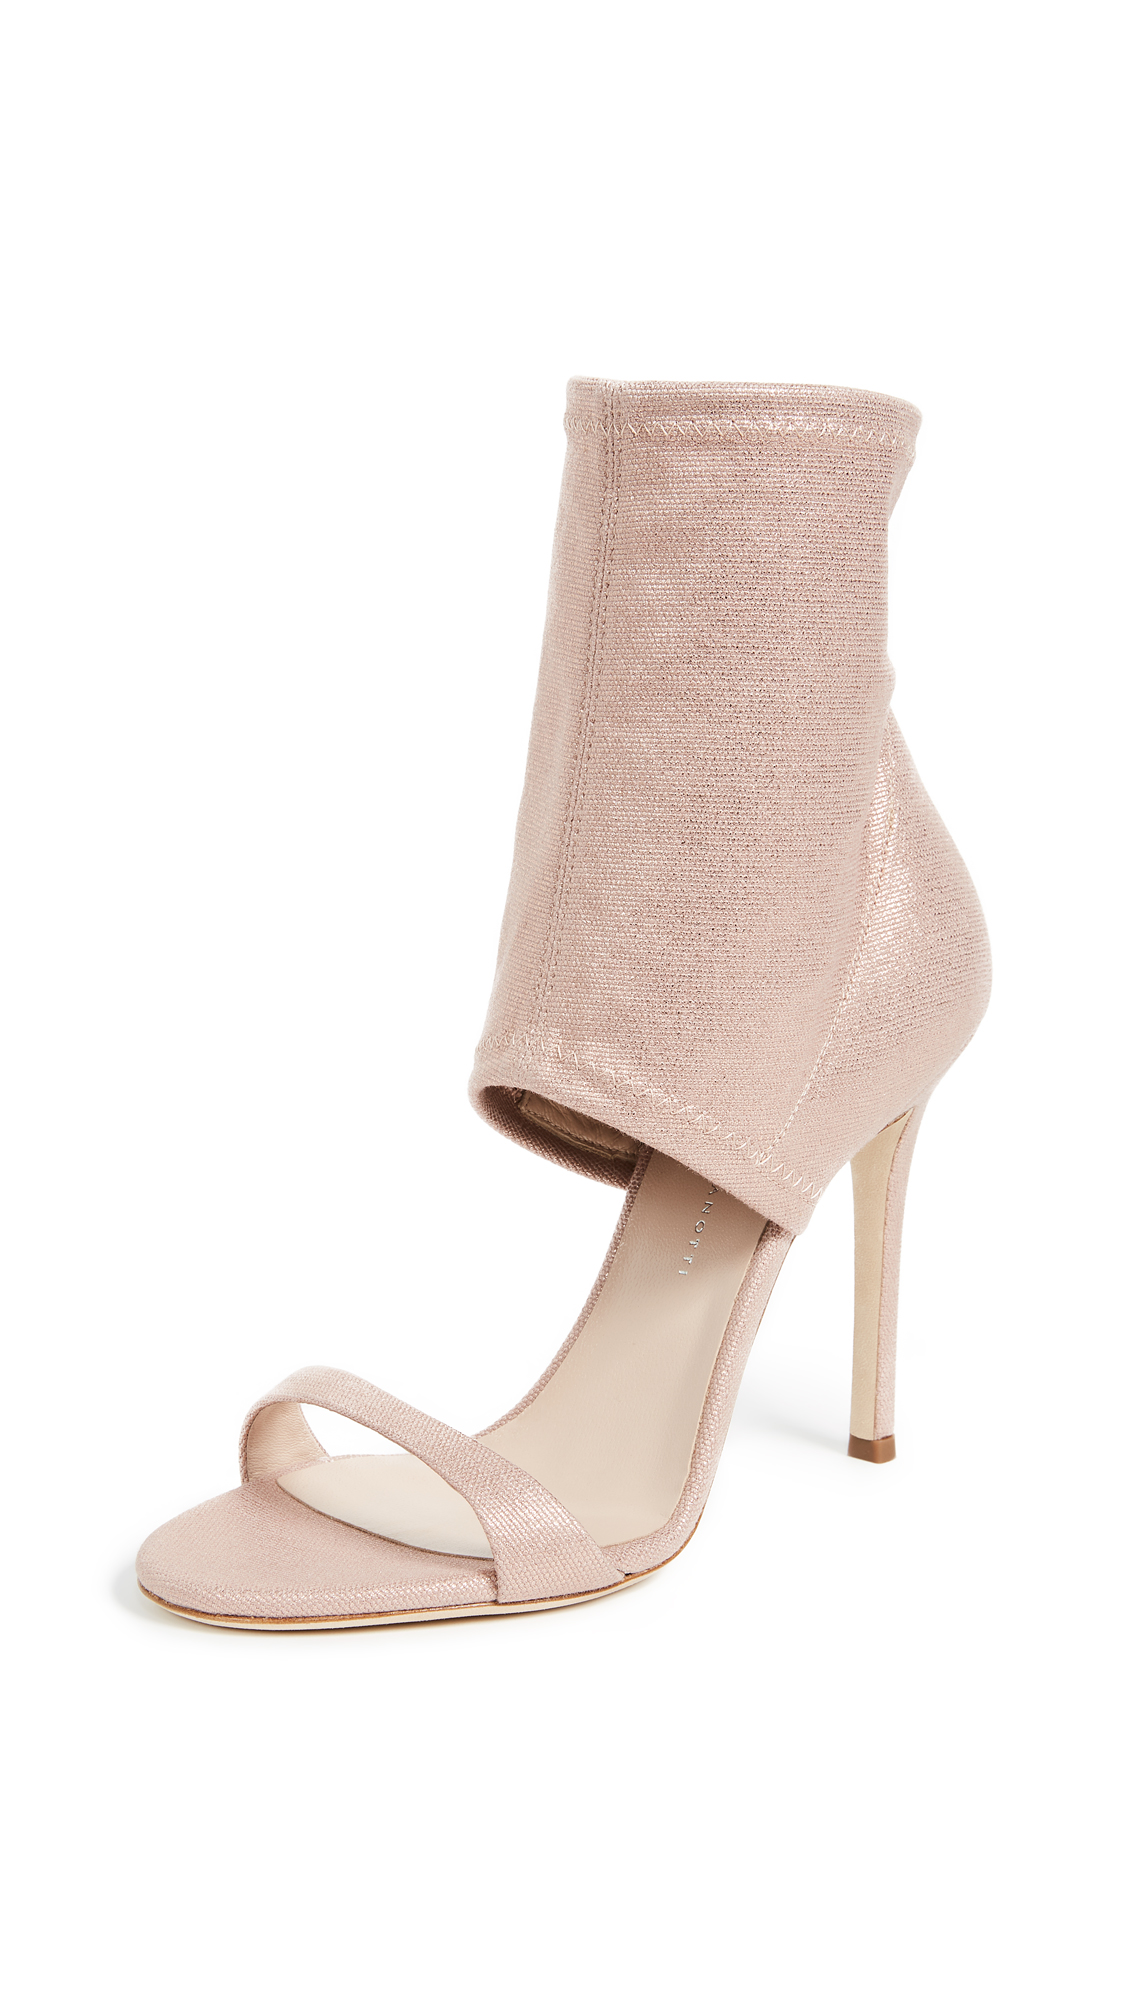 Giuseppe Zanotti Covered Ankle Heeled Sandals - Rose